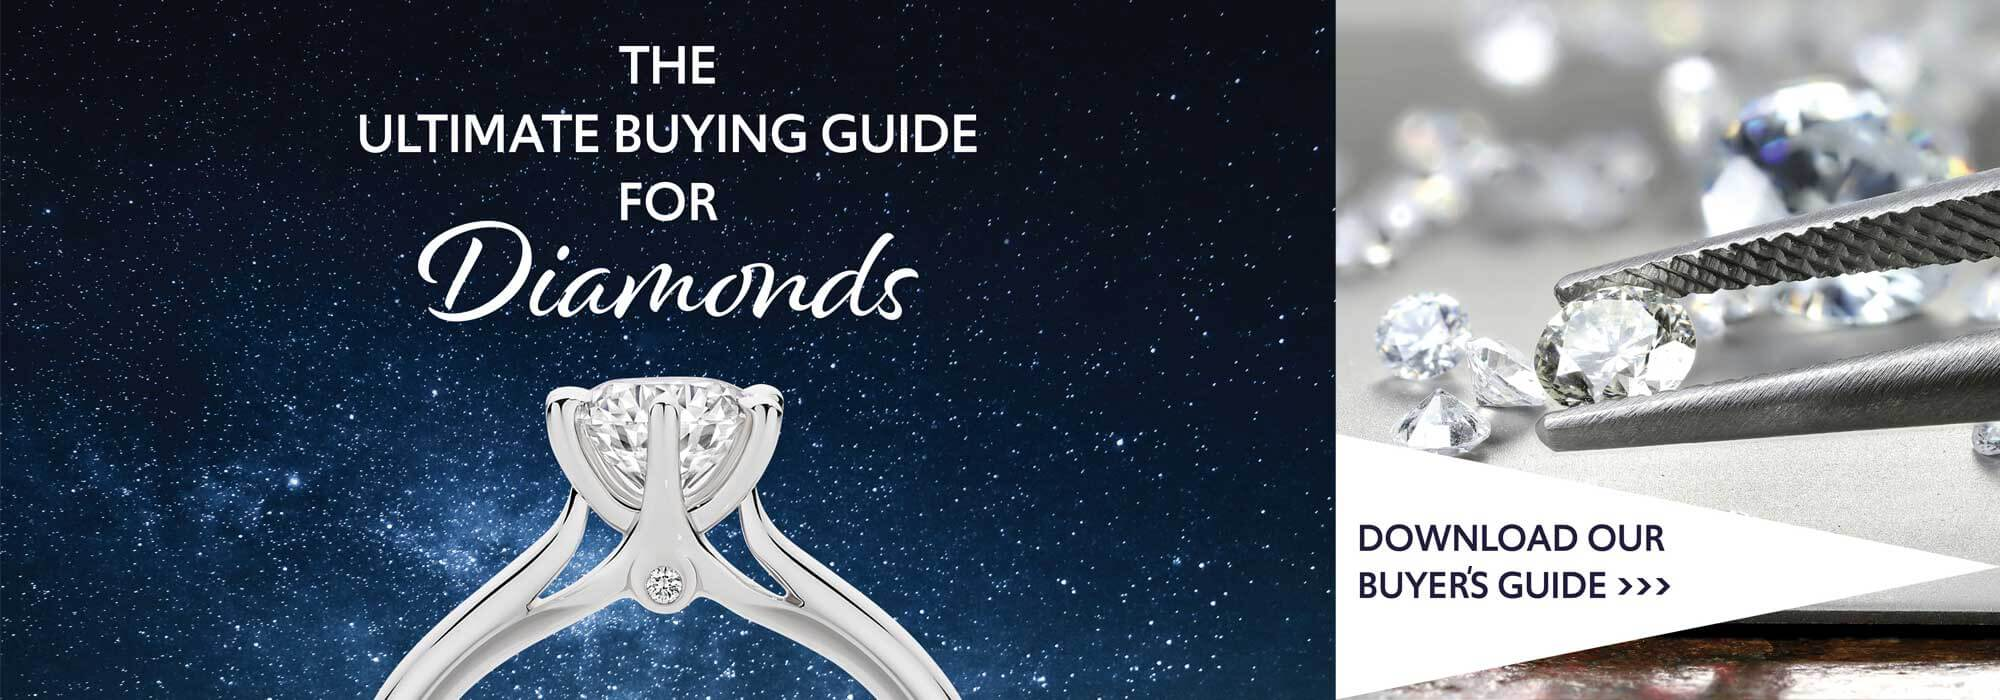 Diamond Buying Guide At passion8